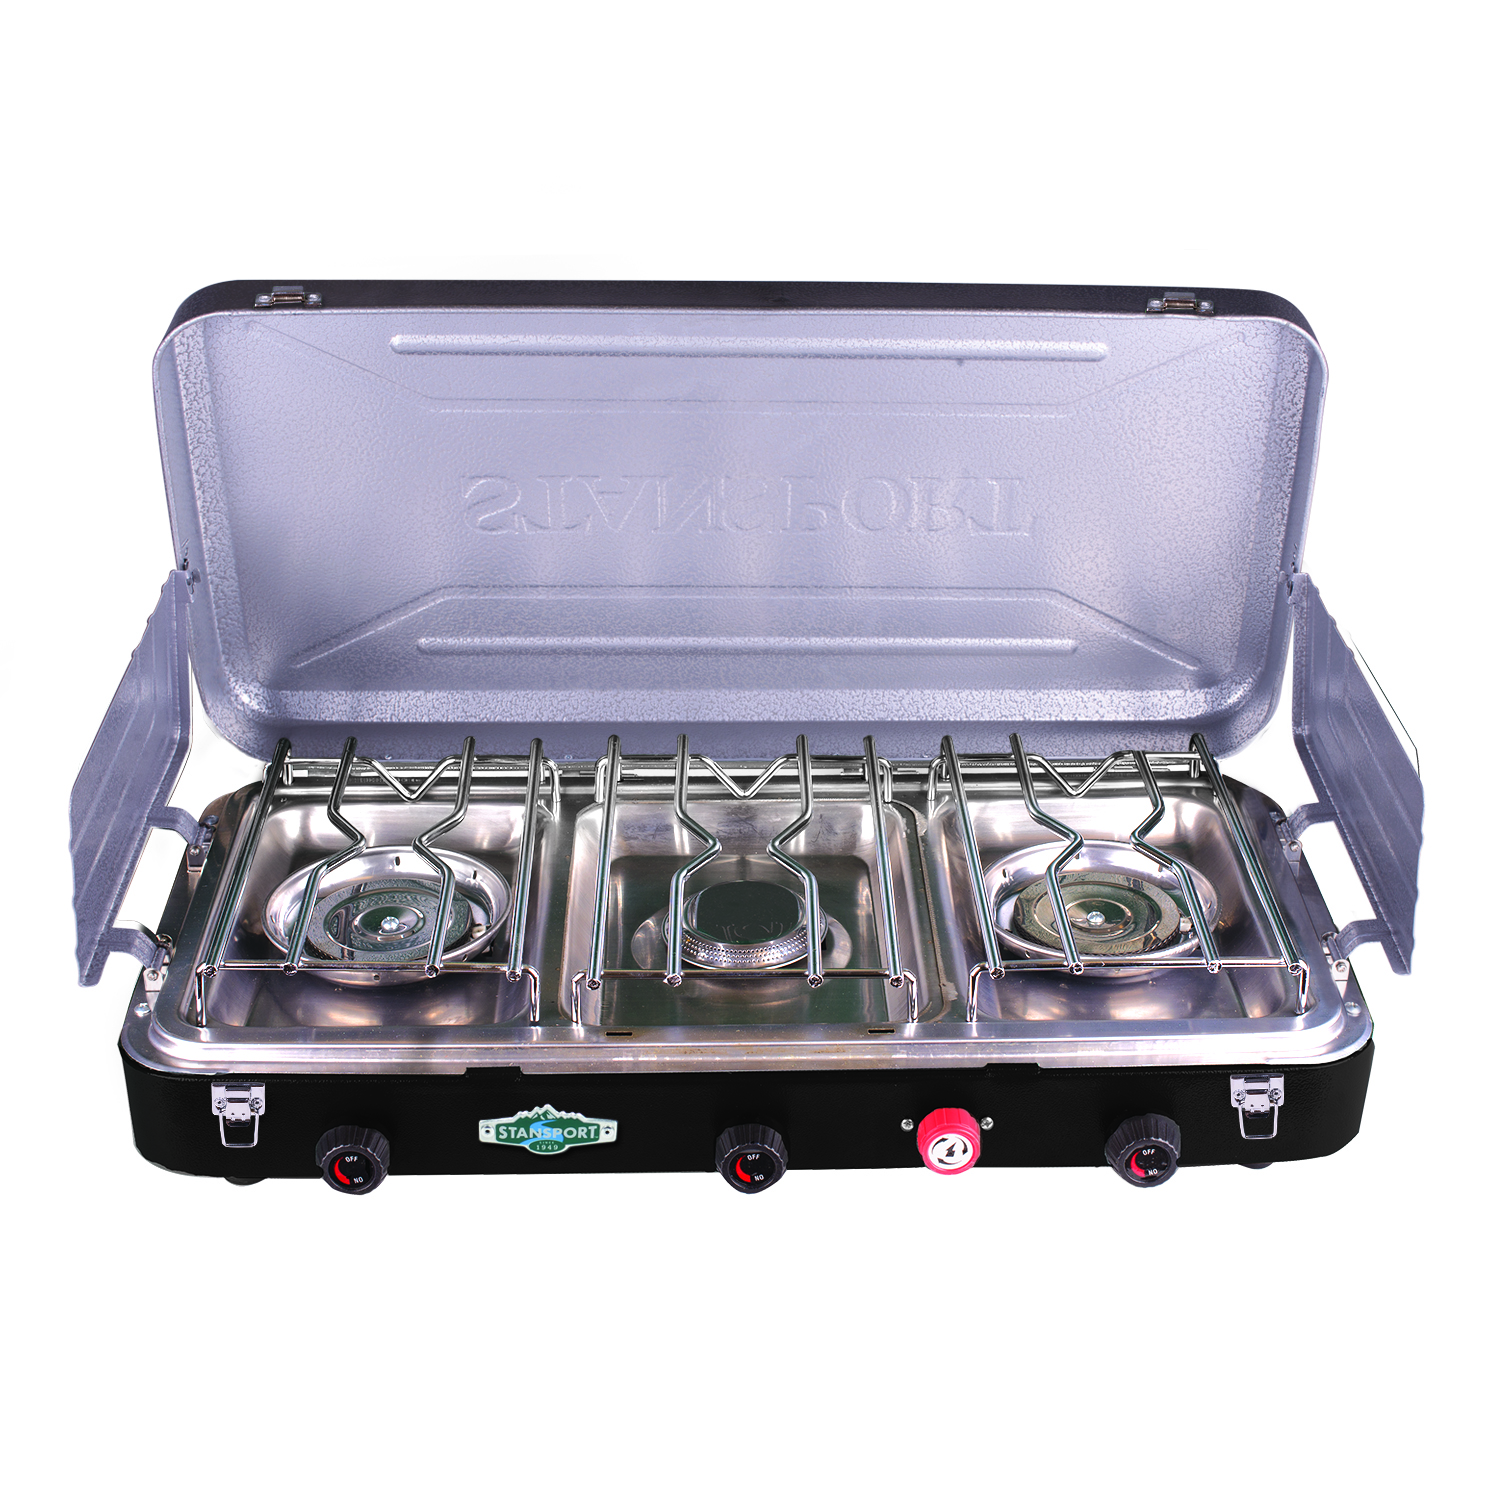 3 Burner Camp Stoves: Stansport 3 Burner Propane Stove